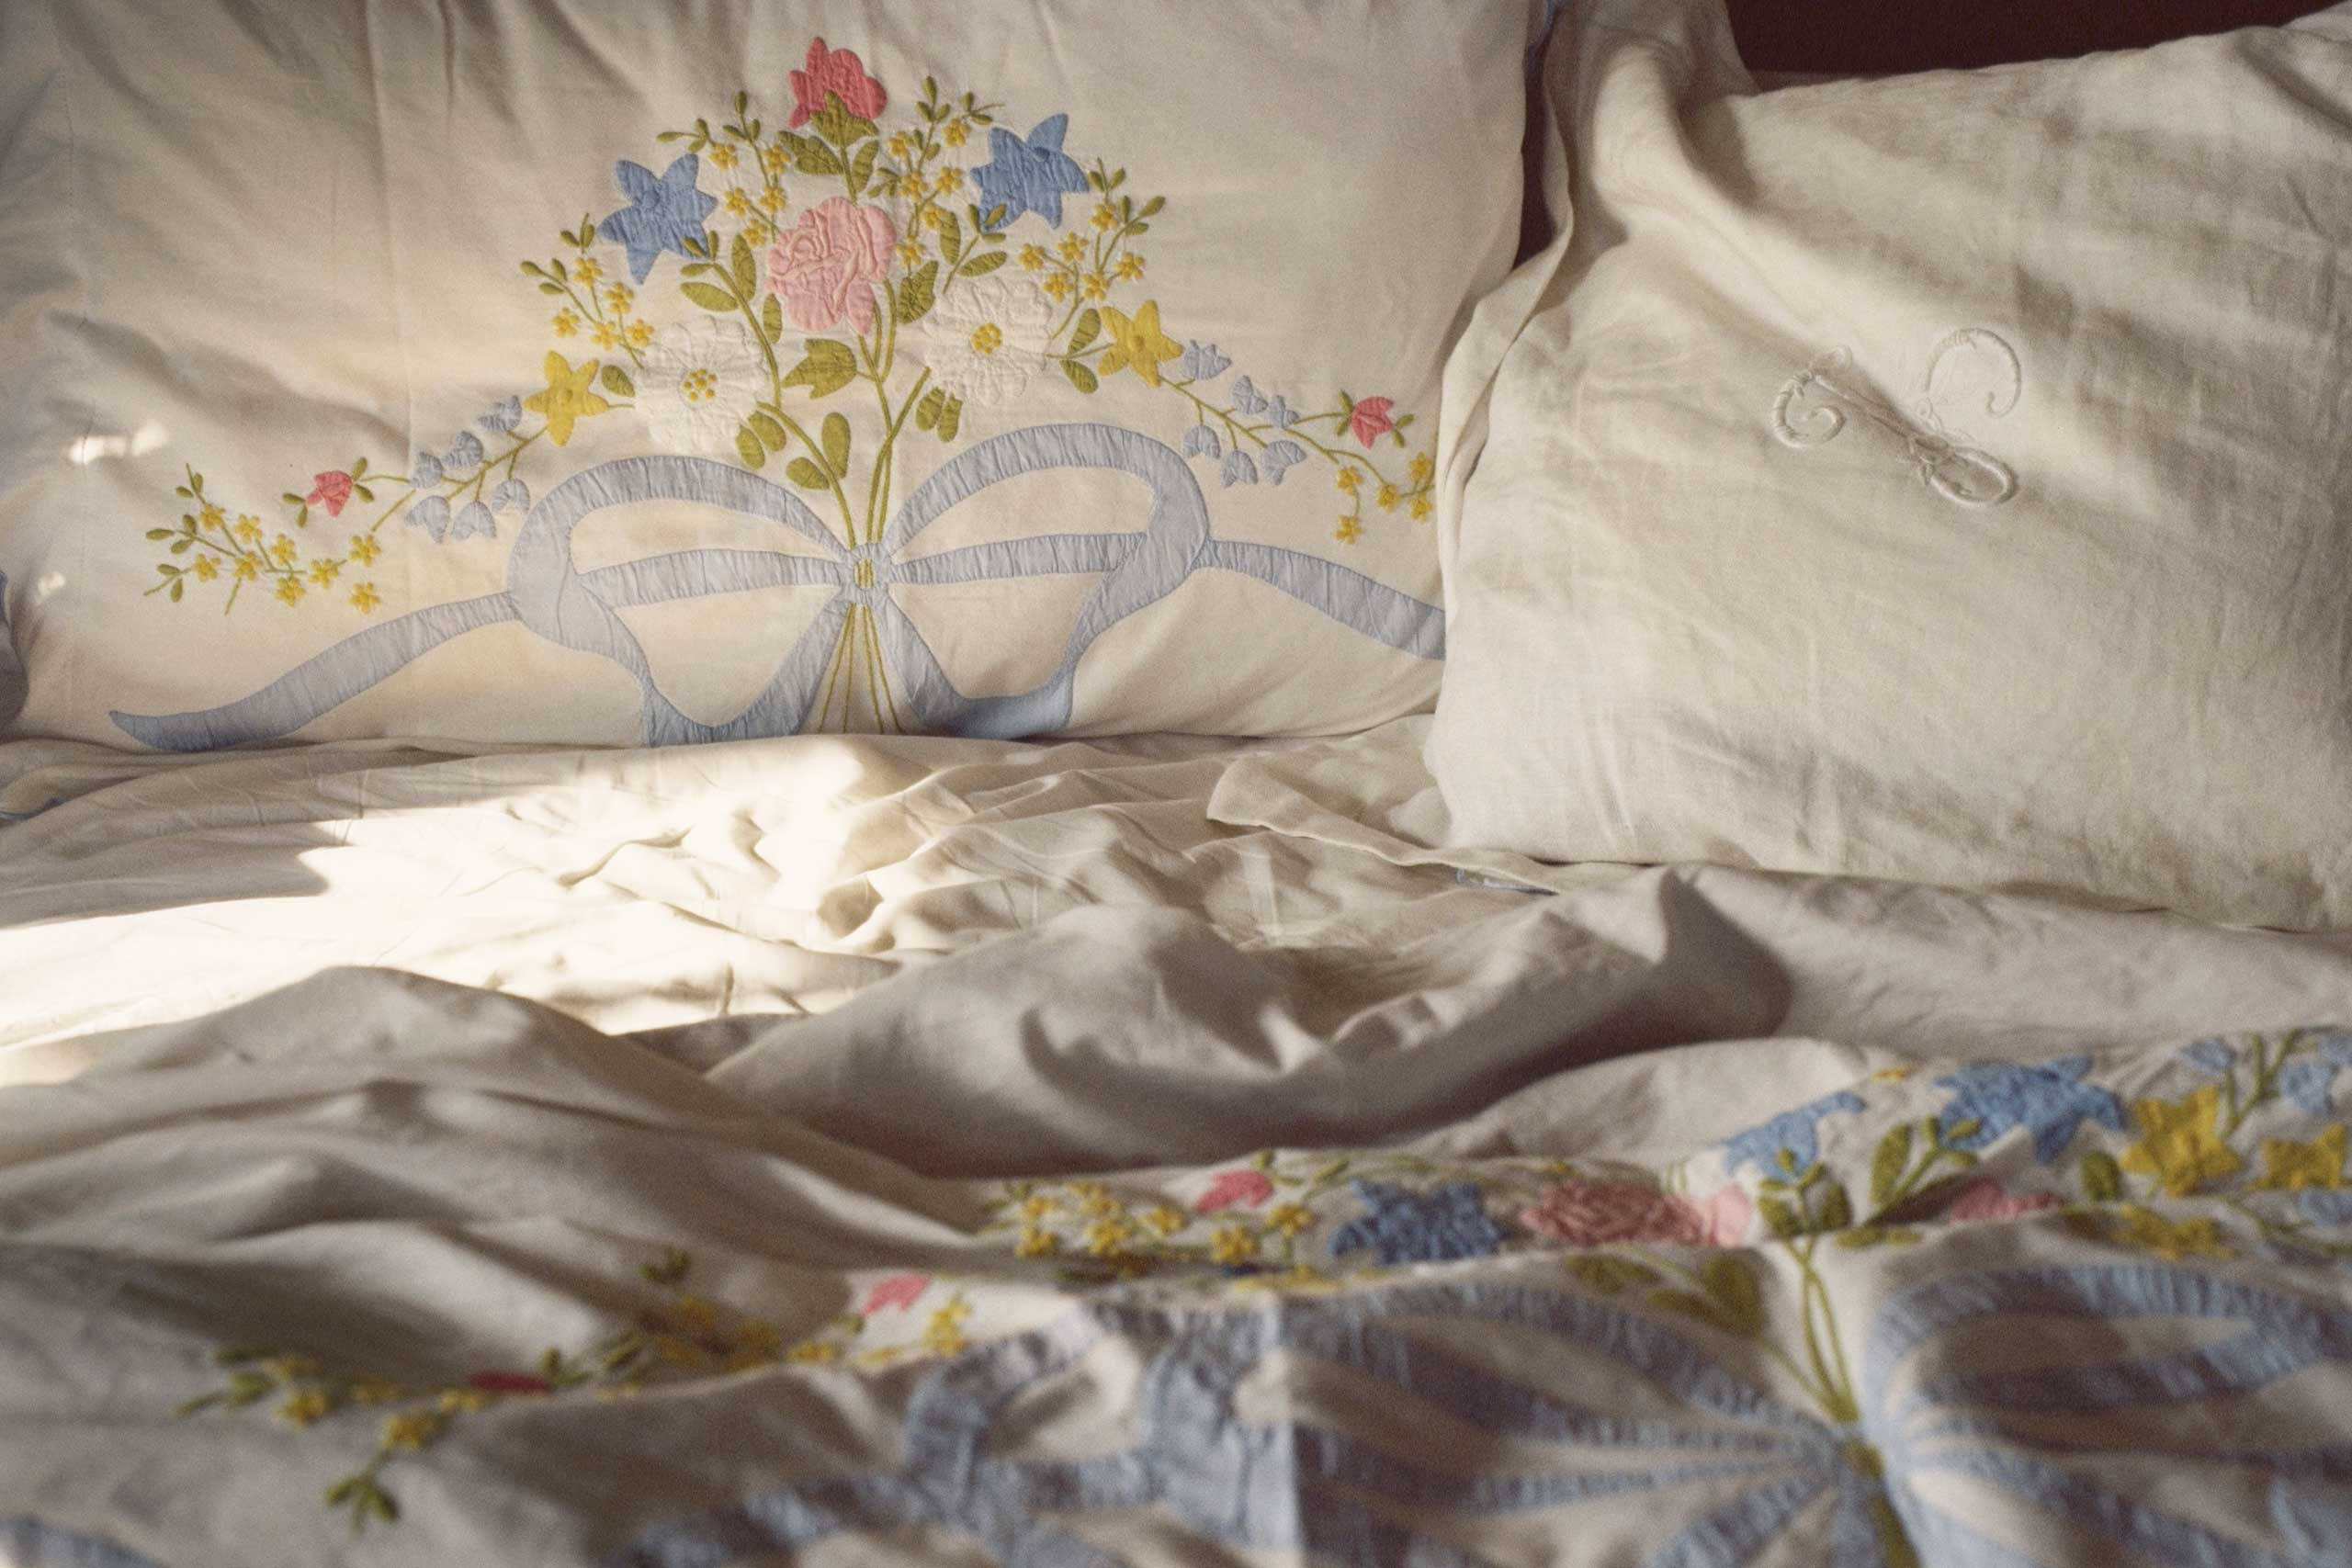 Mum's Side of the Bed, Sussex, 1998